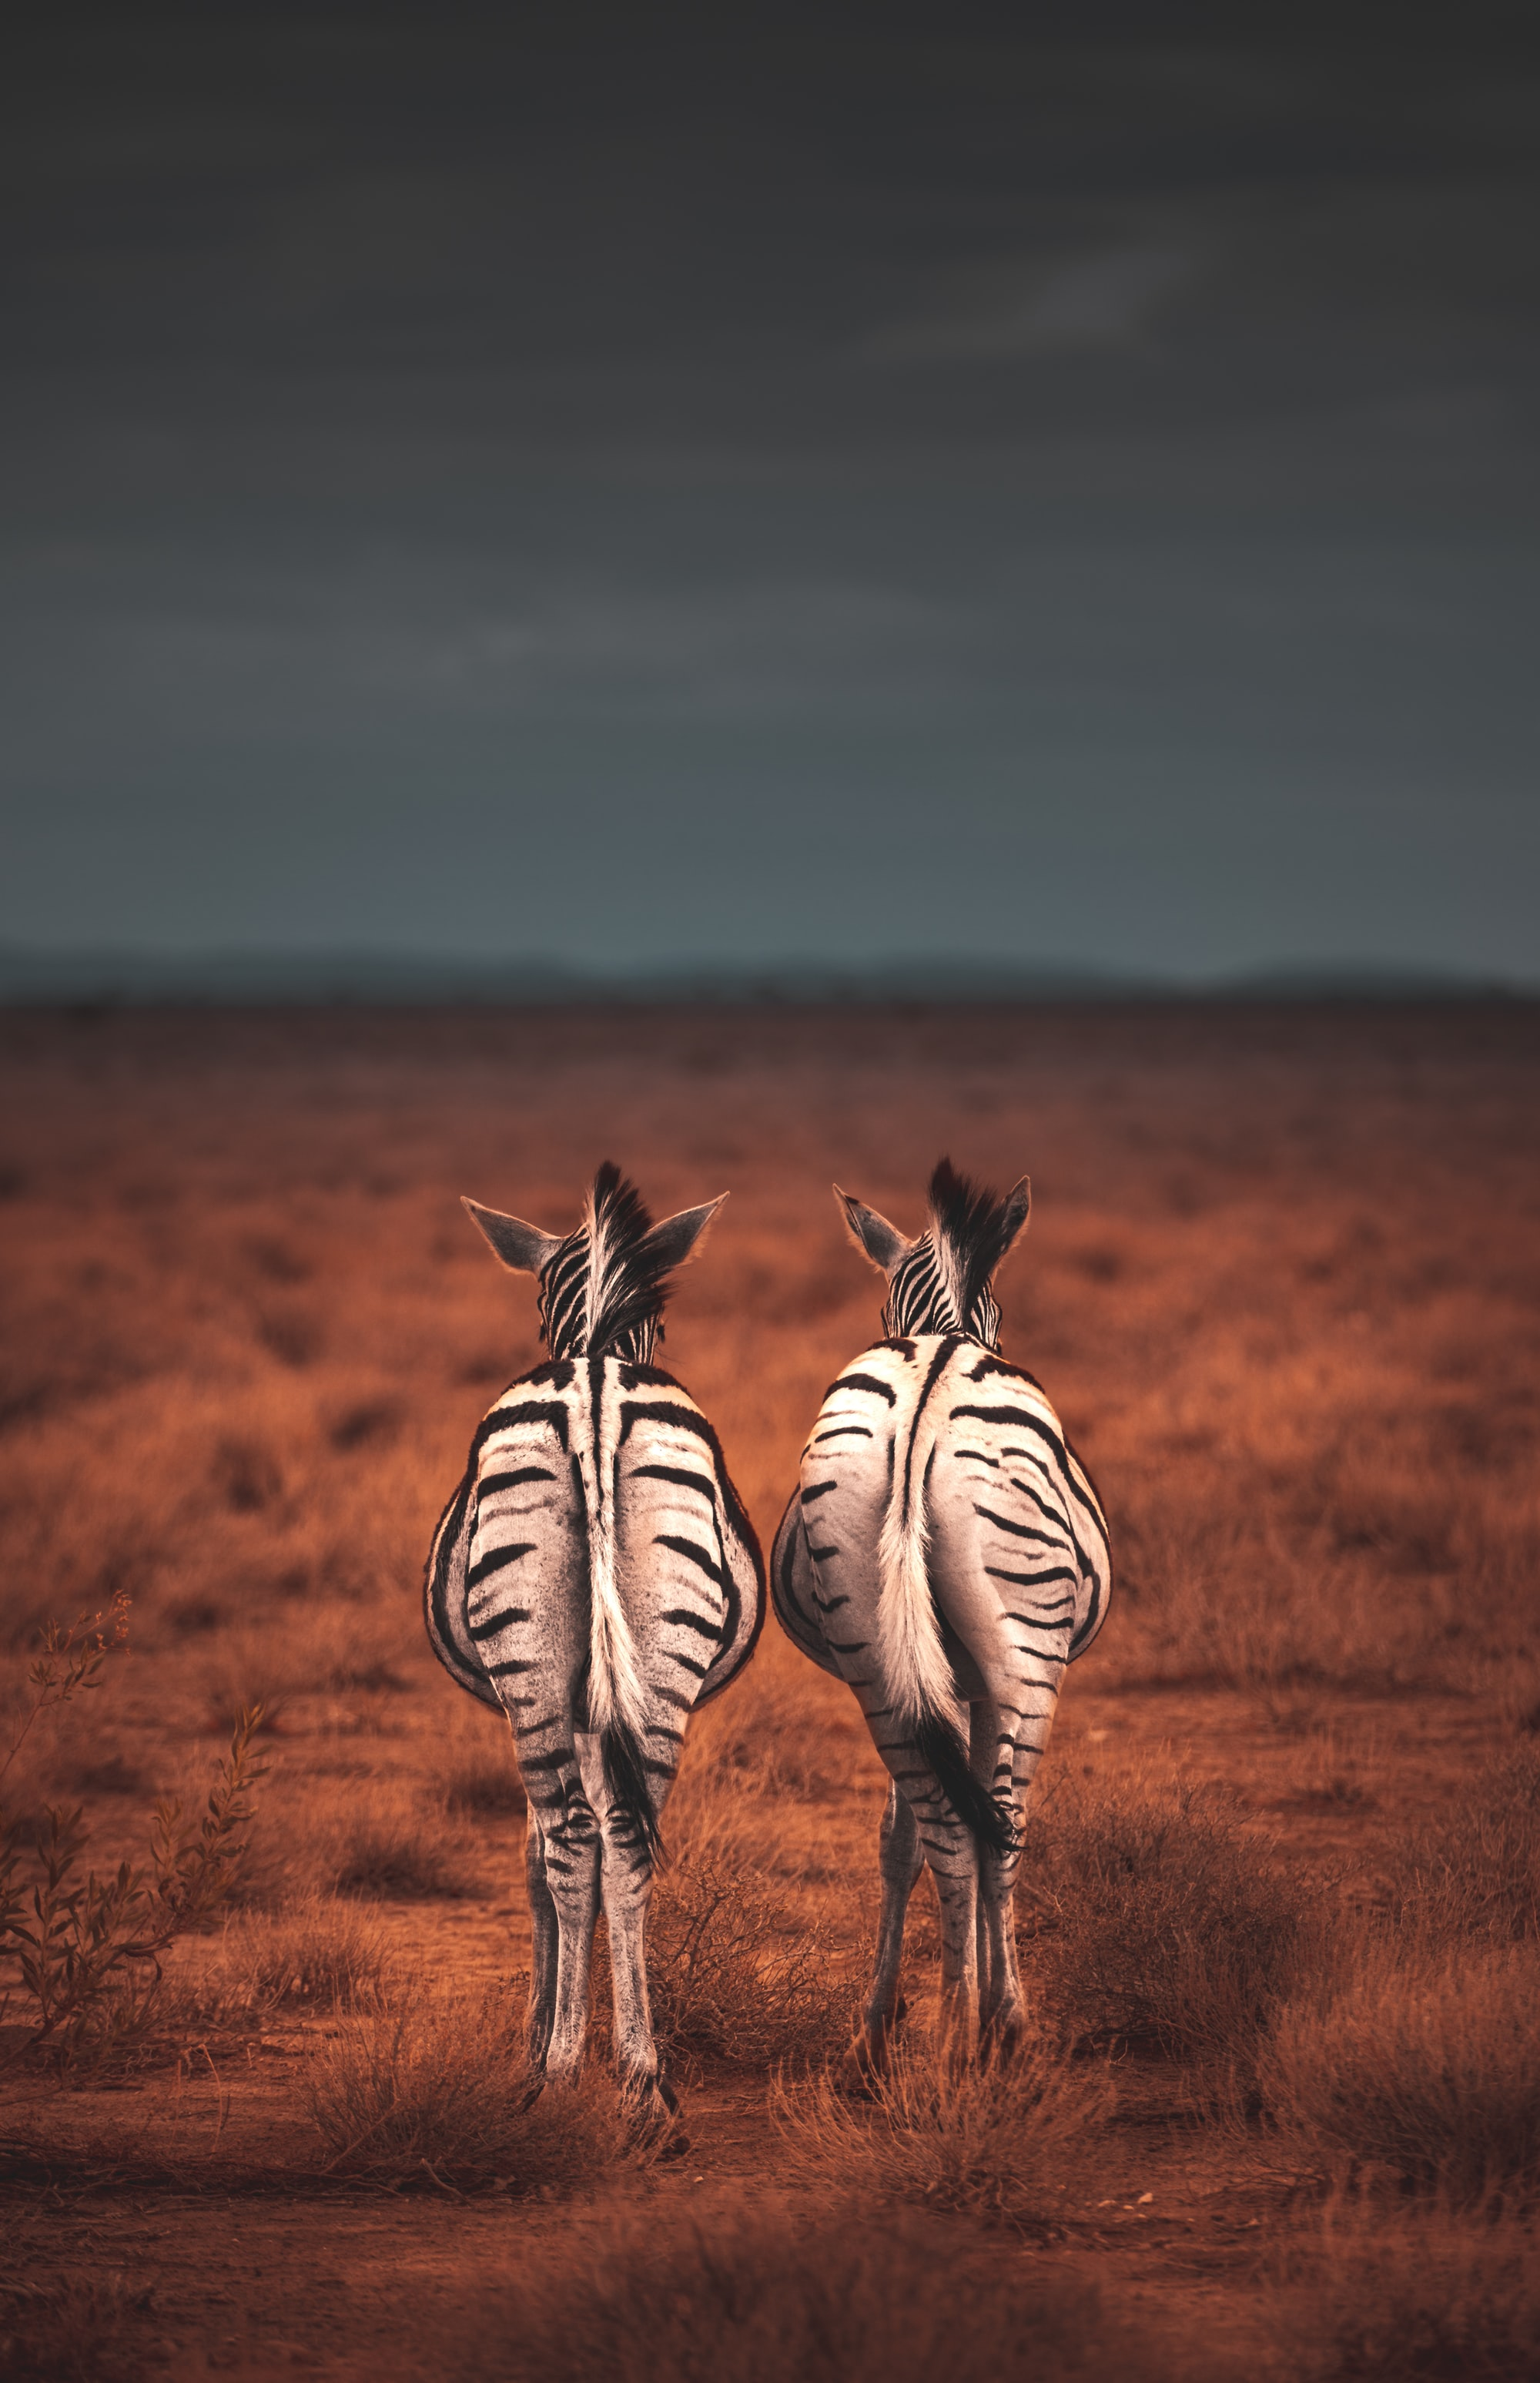 Sun's out, bums out. Two zebras on the plains of Etosha before a storm rolls in.